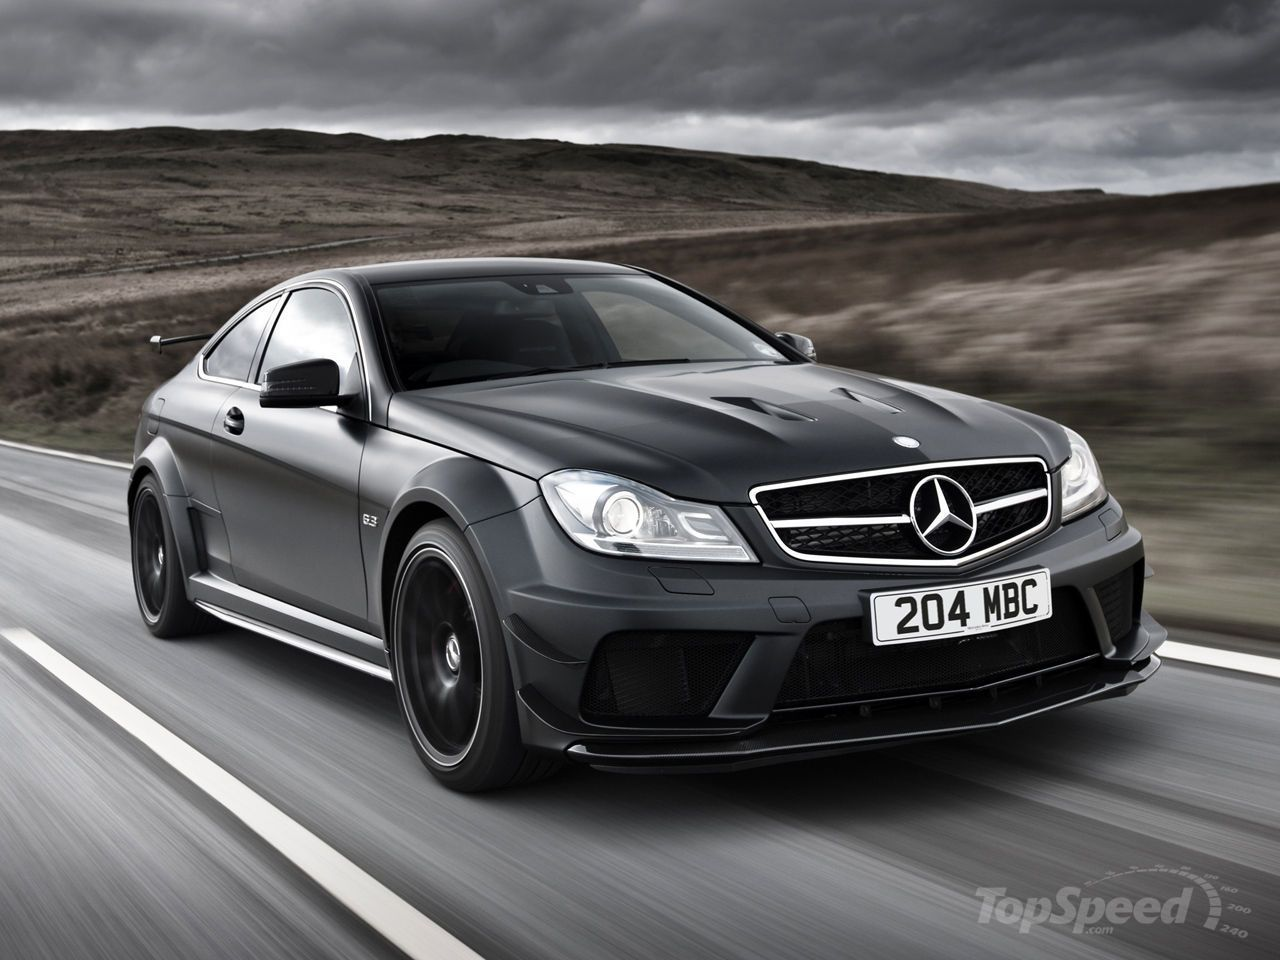 2013 mercedes c63 amg black series coupe come to papa for Mercedes benz amg black